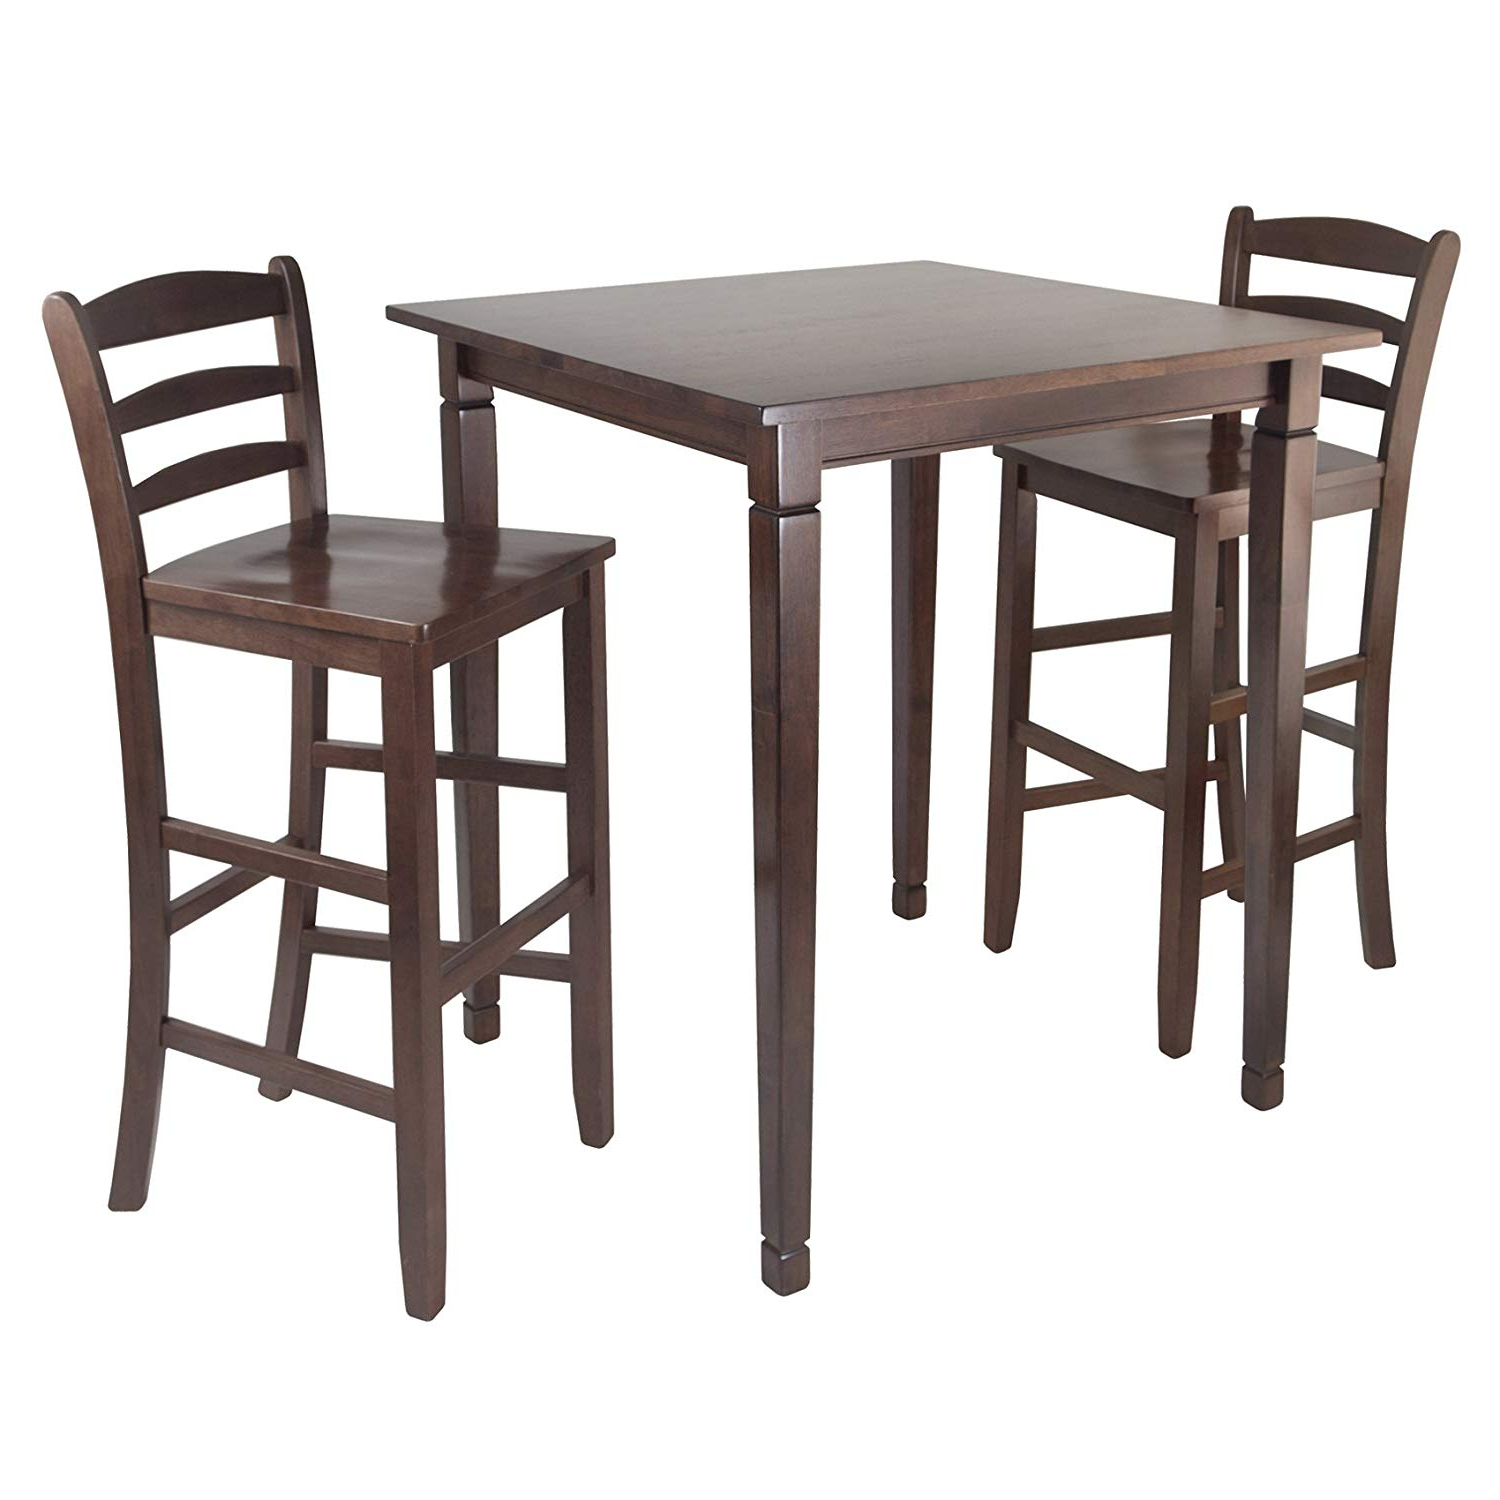 Winsome Kingsgate High/pub Dining Table With Ladder Back High Chair, 3 Piece Throughout Current Winsome 3 Piece Counter Height Dining Sets (View 16 of 20)